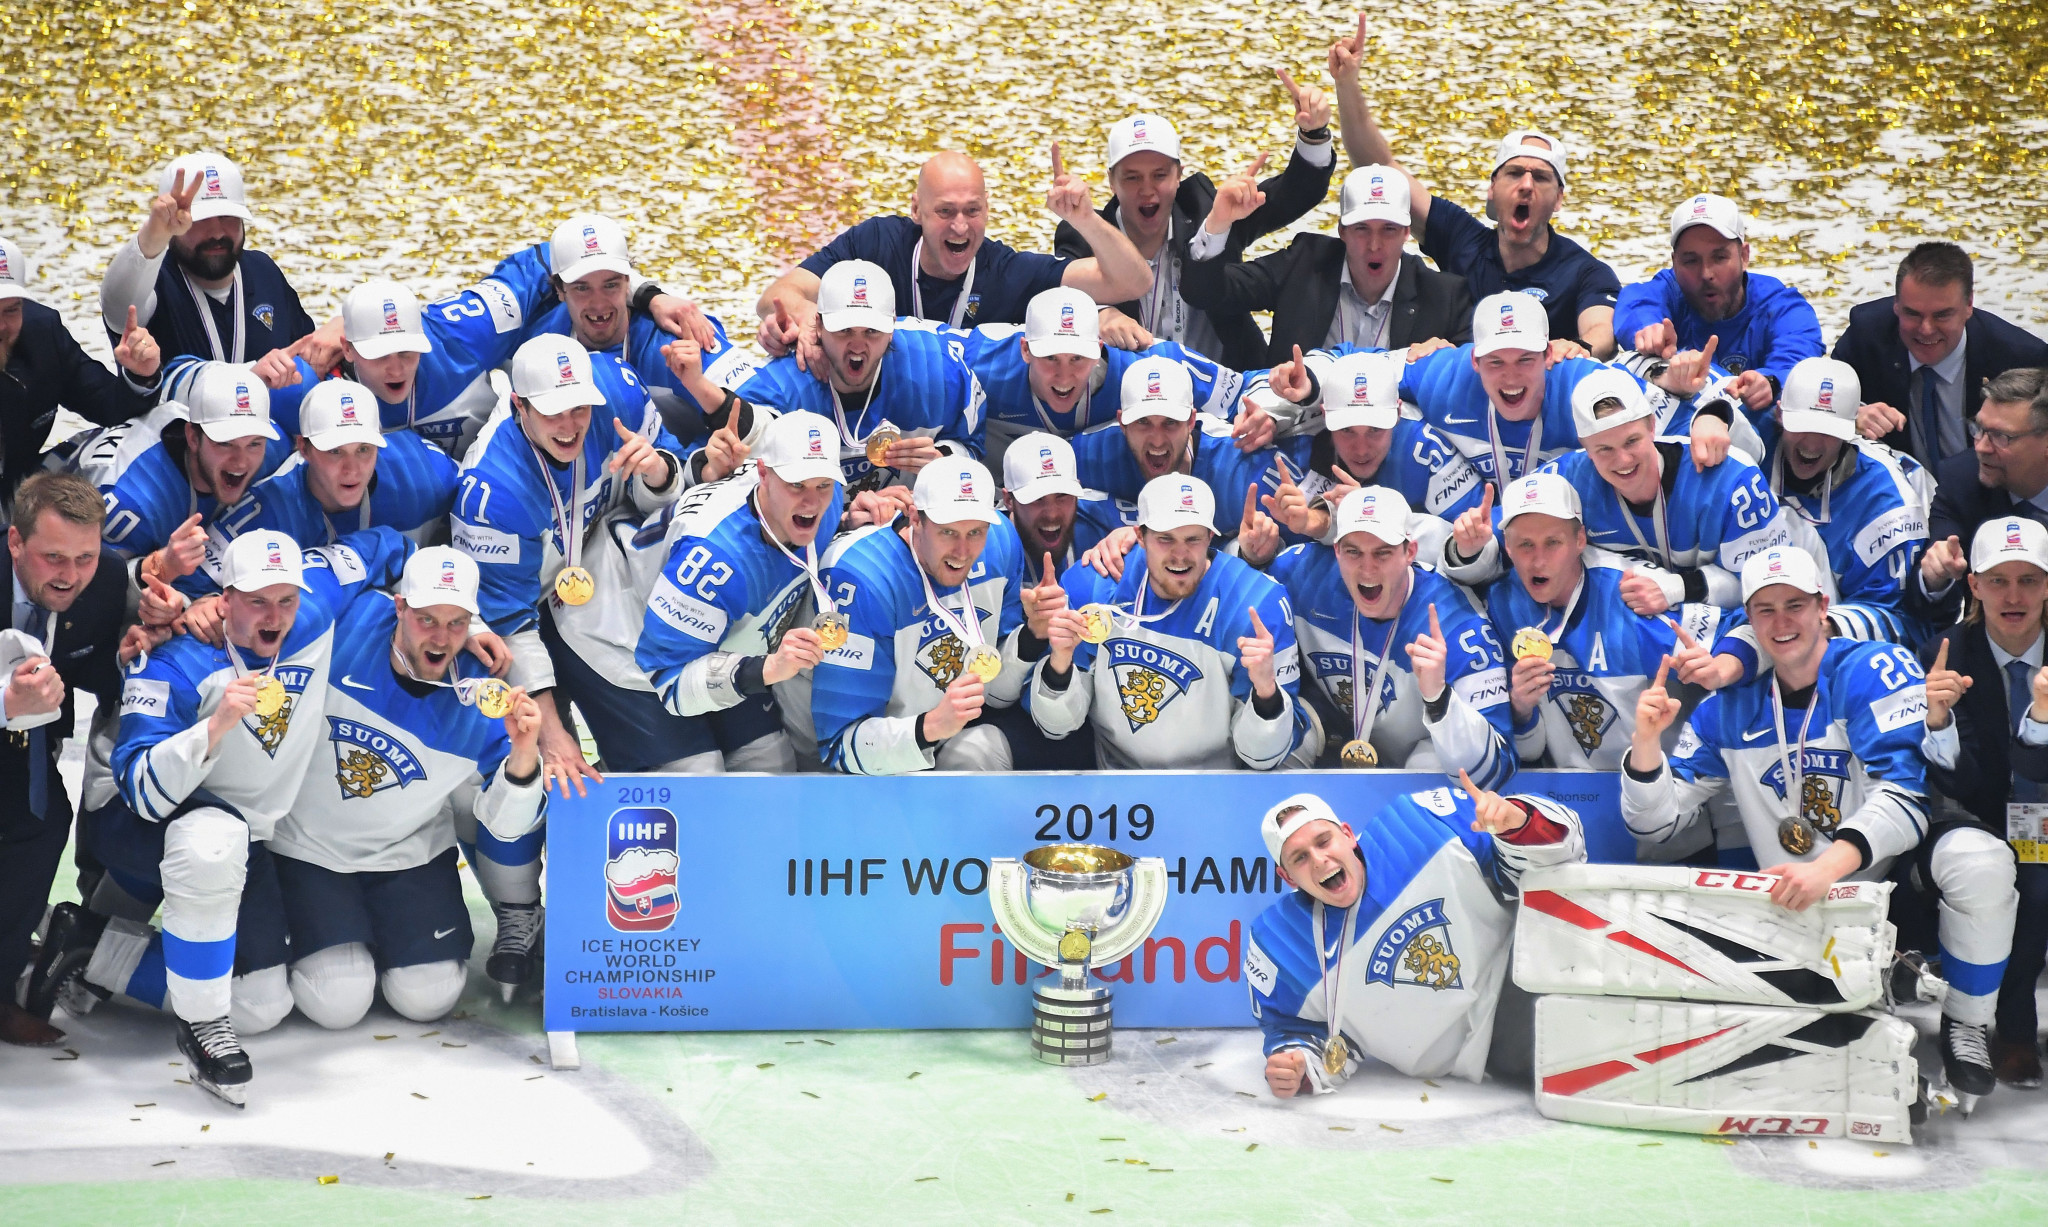 Finland triumphed in the final of the IIHF World Championship ©Getty Images